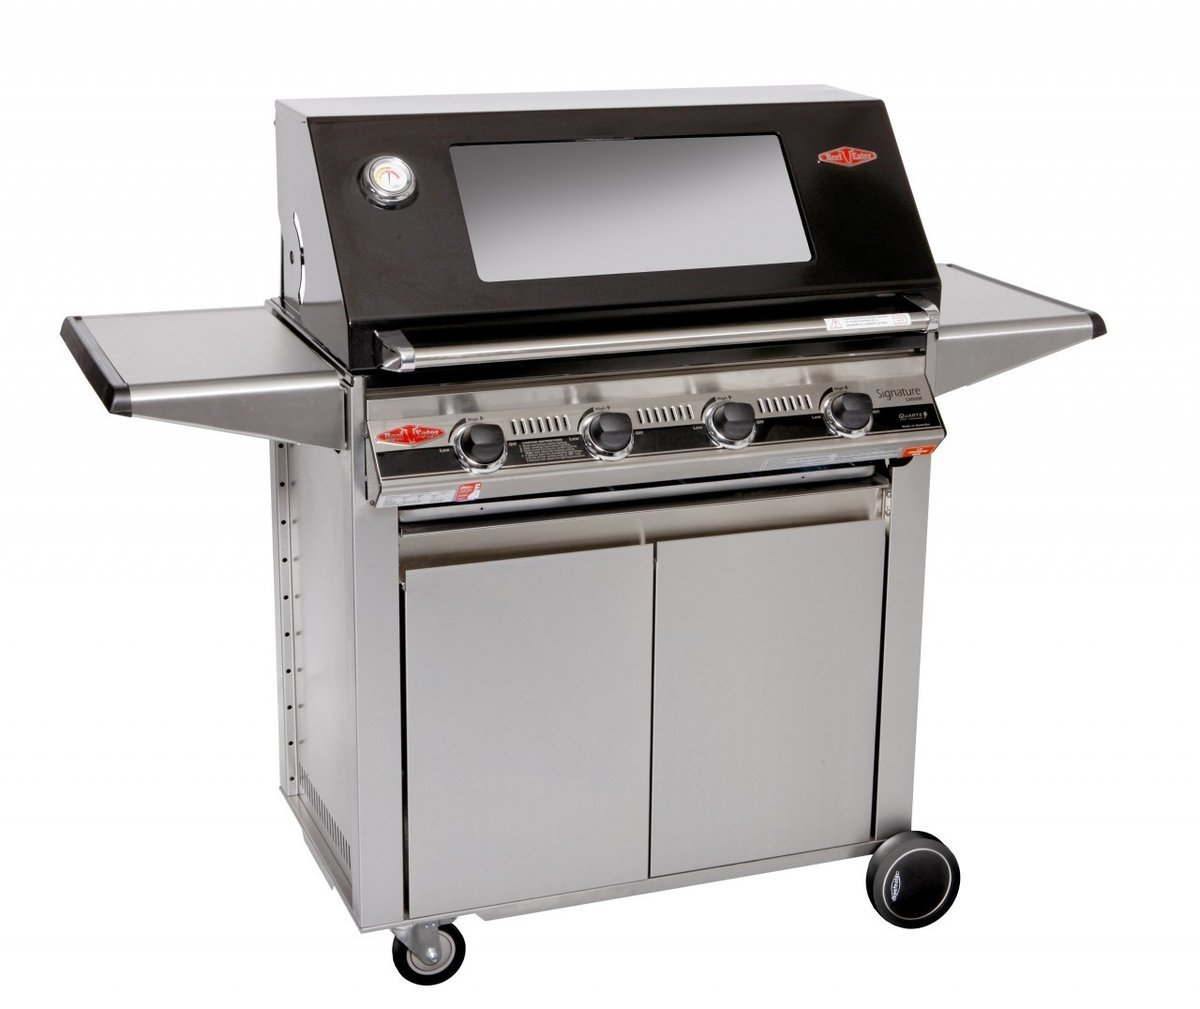 Beefeater BS19242 BBQ Grill